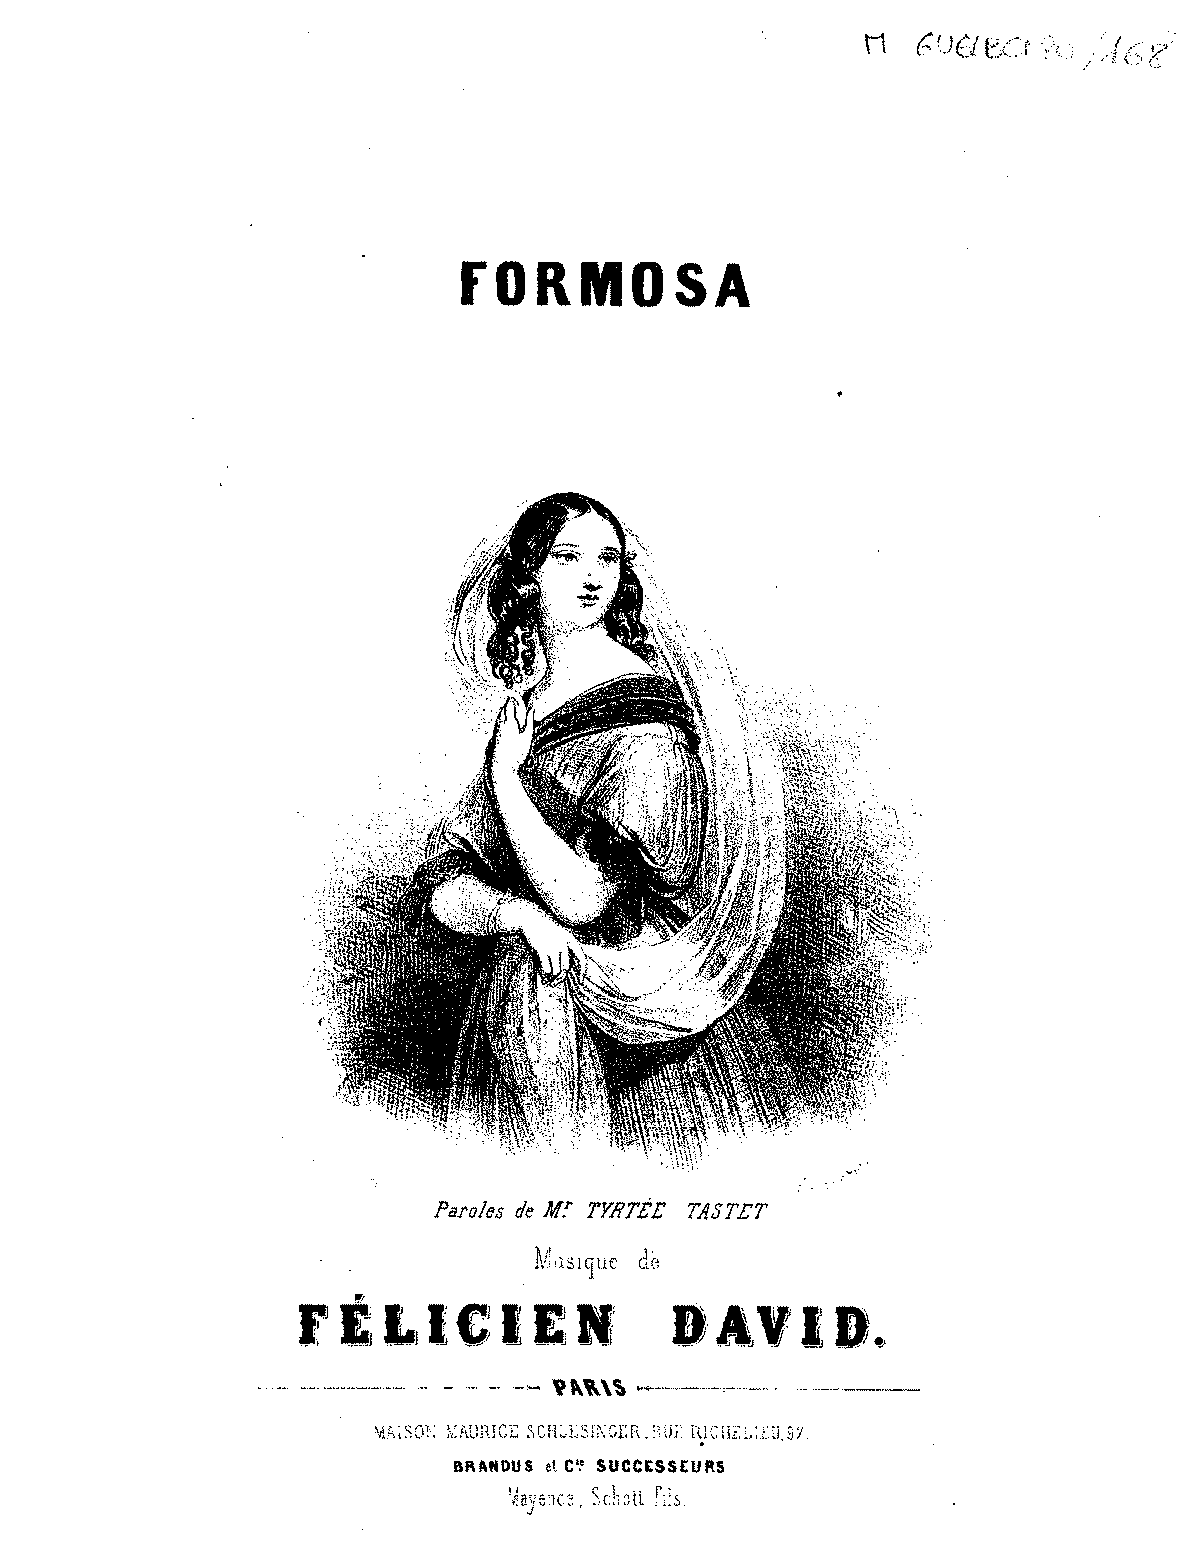 PMLP416558-David - Formosa VPf.pdf